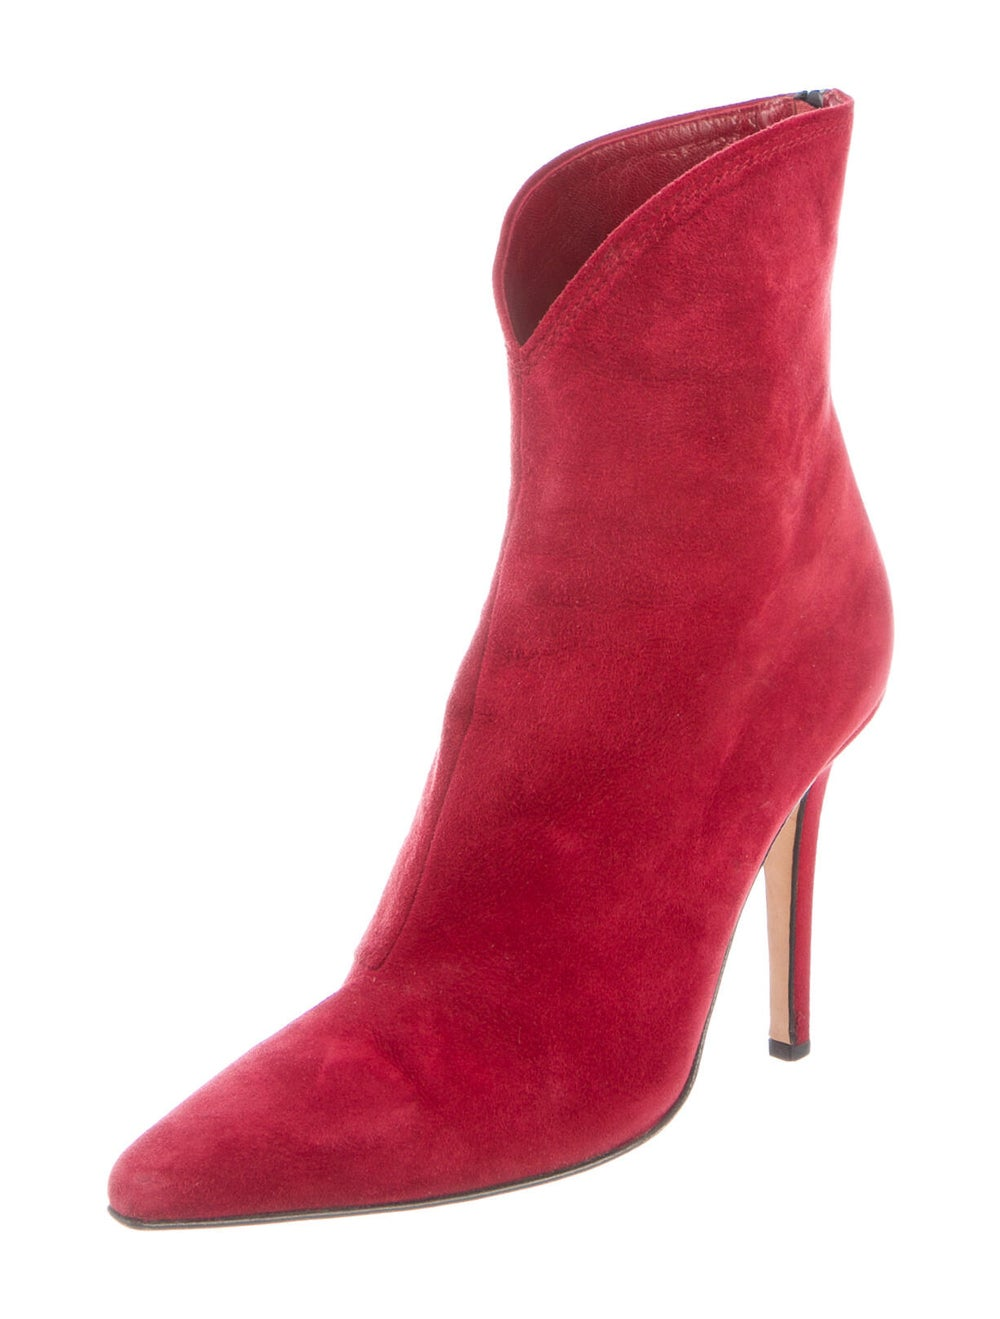 Jimmy Choo Suede Boots Red - image 2